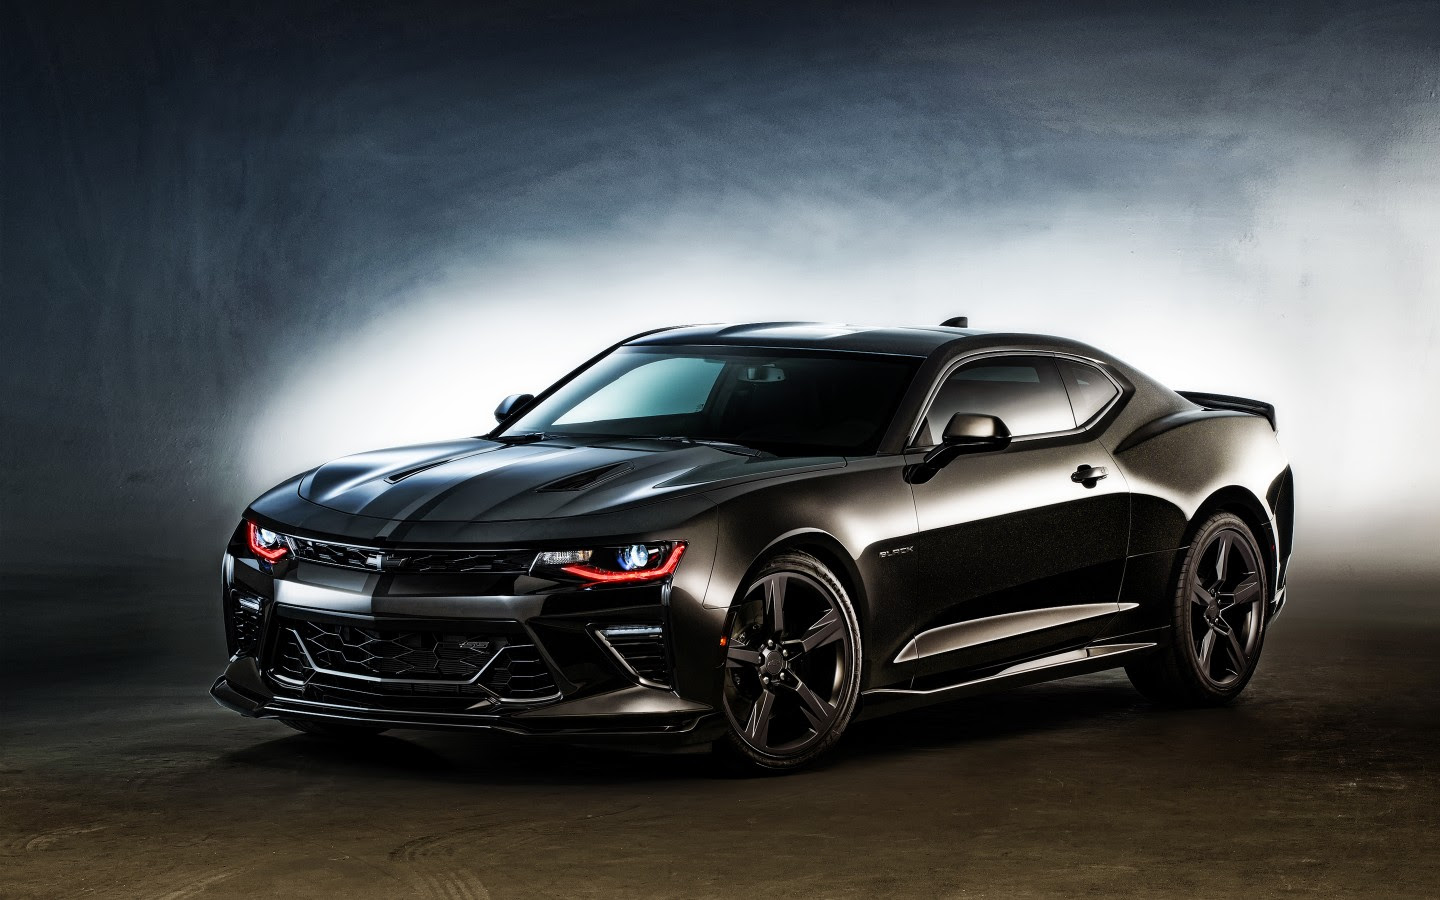 2016 Chevrolet Camaro Black Wallpaper  HD Car Wallpapers ID 5934